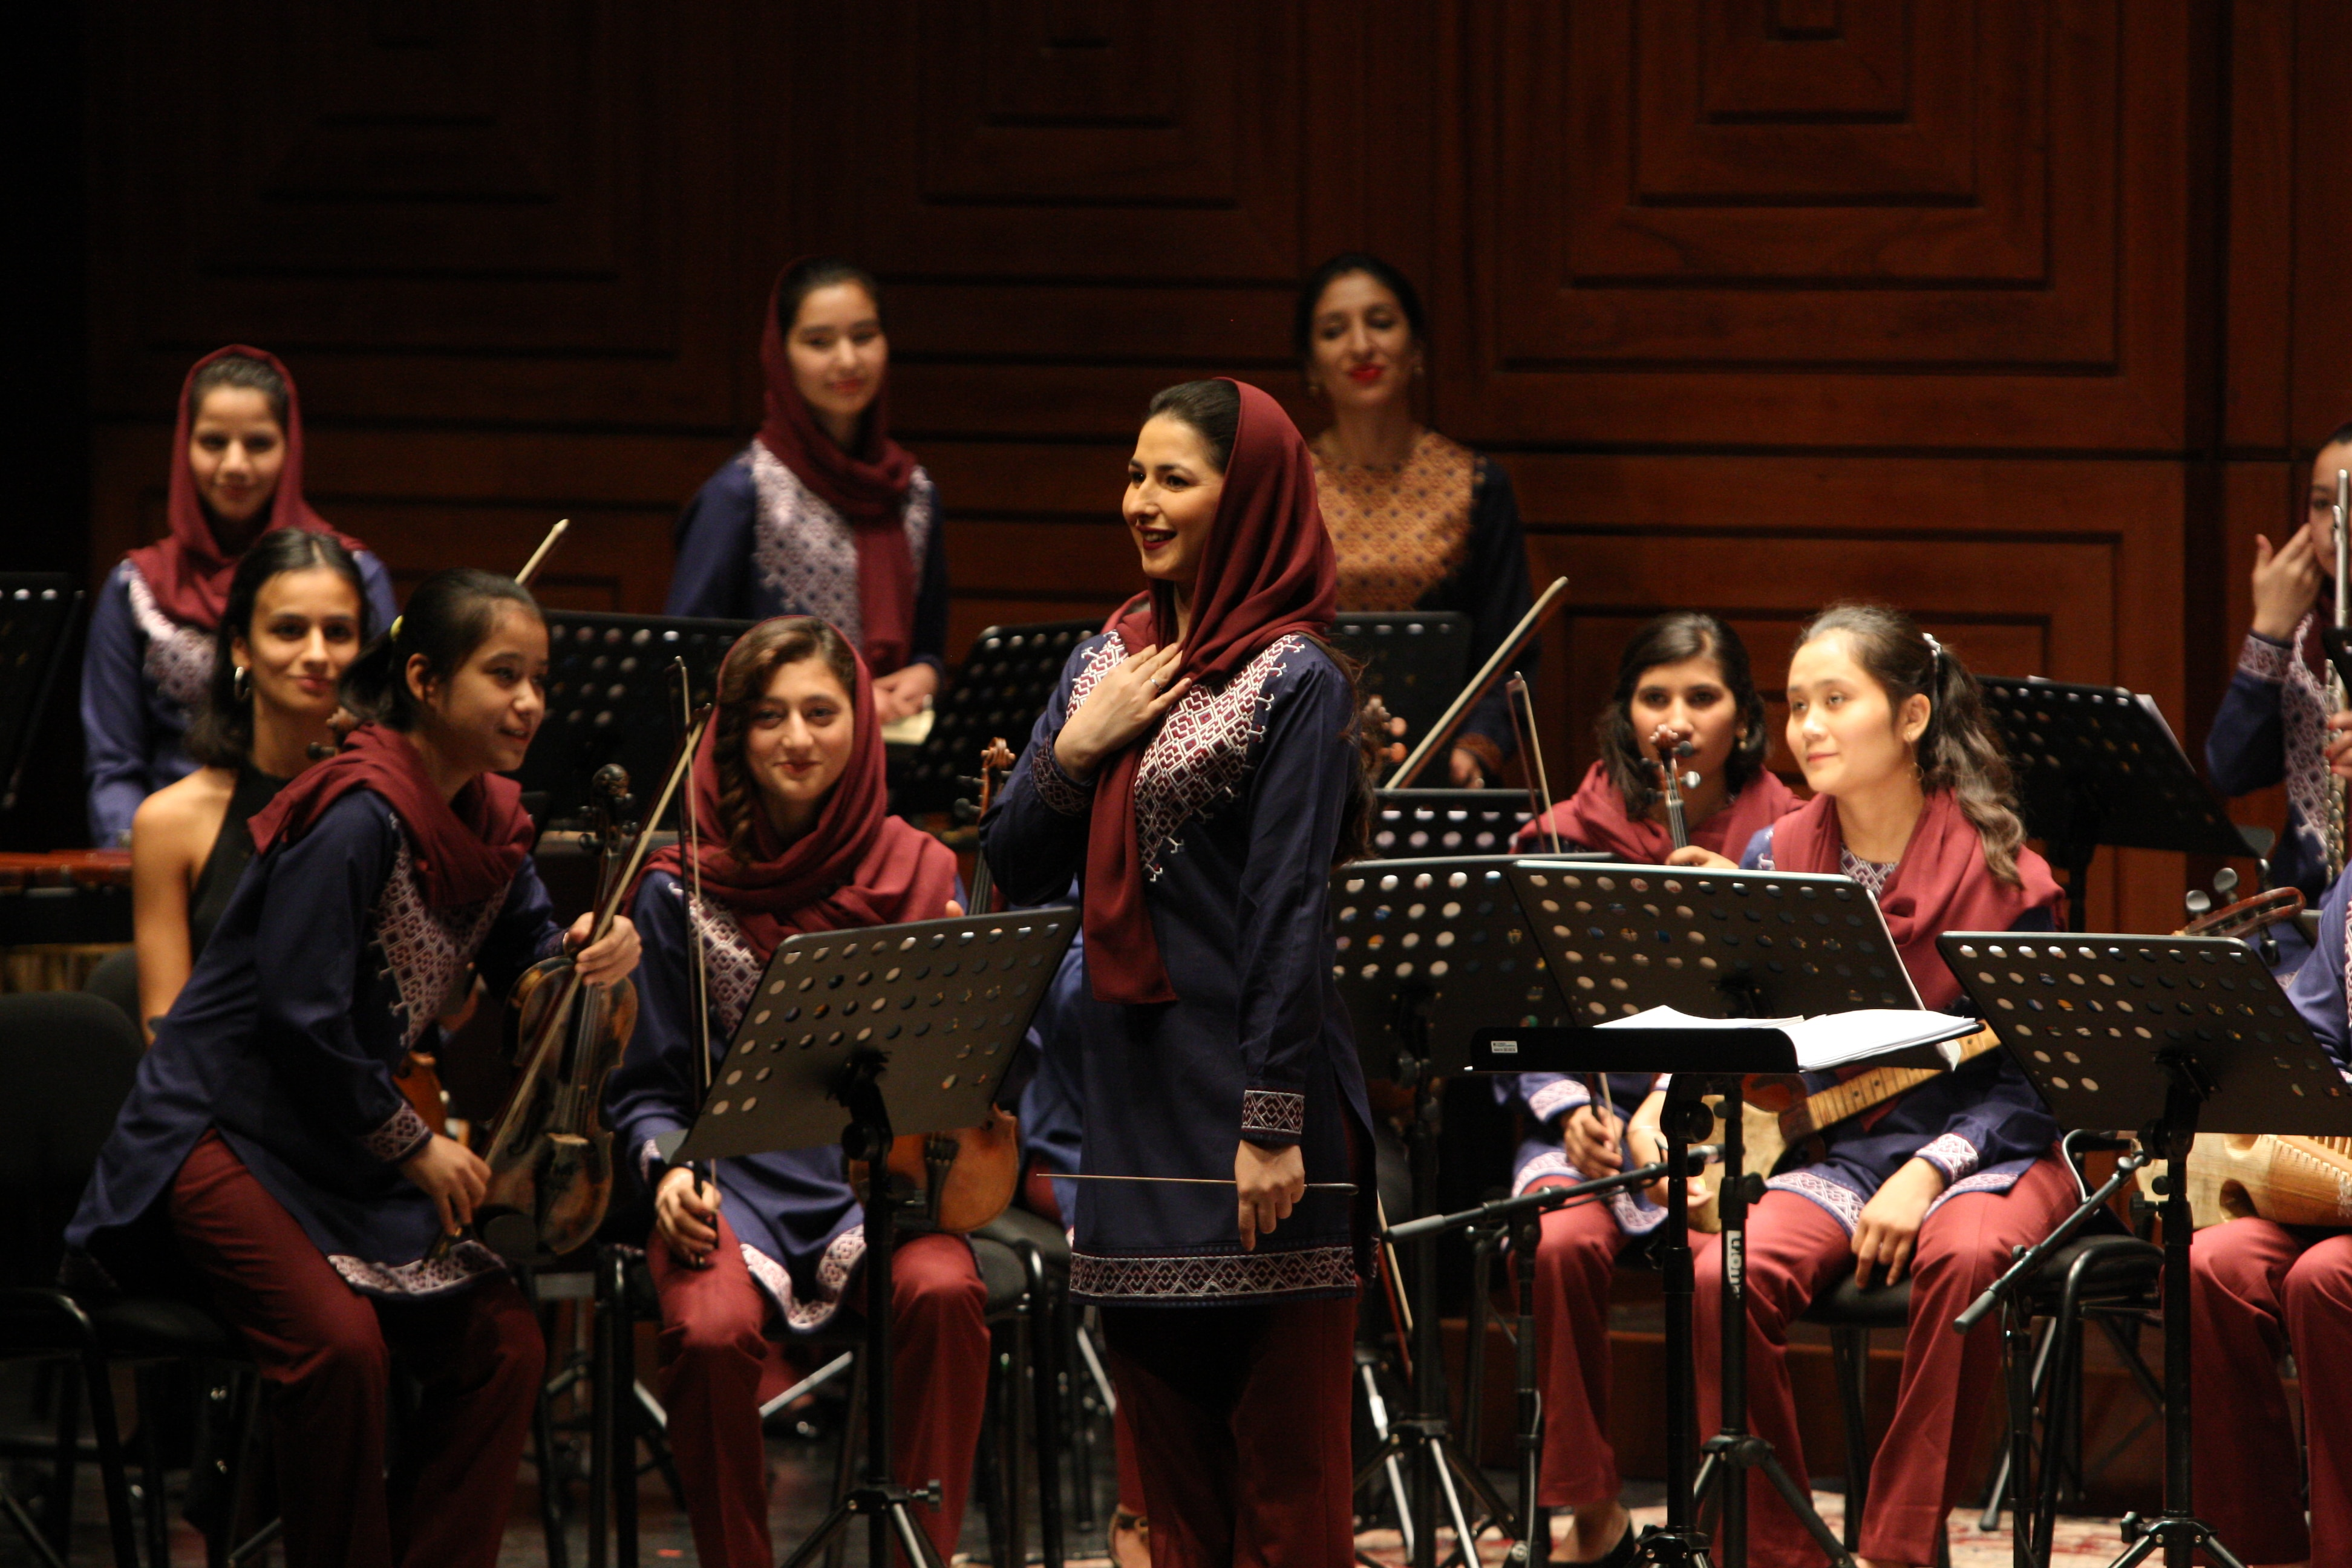 Afghanistan's first female conductor Negin Khpalwak (standing in the middle).